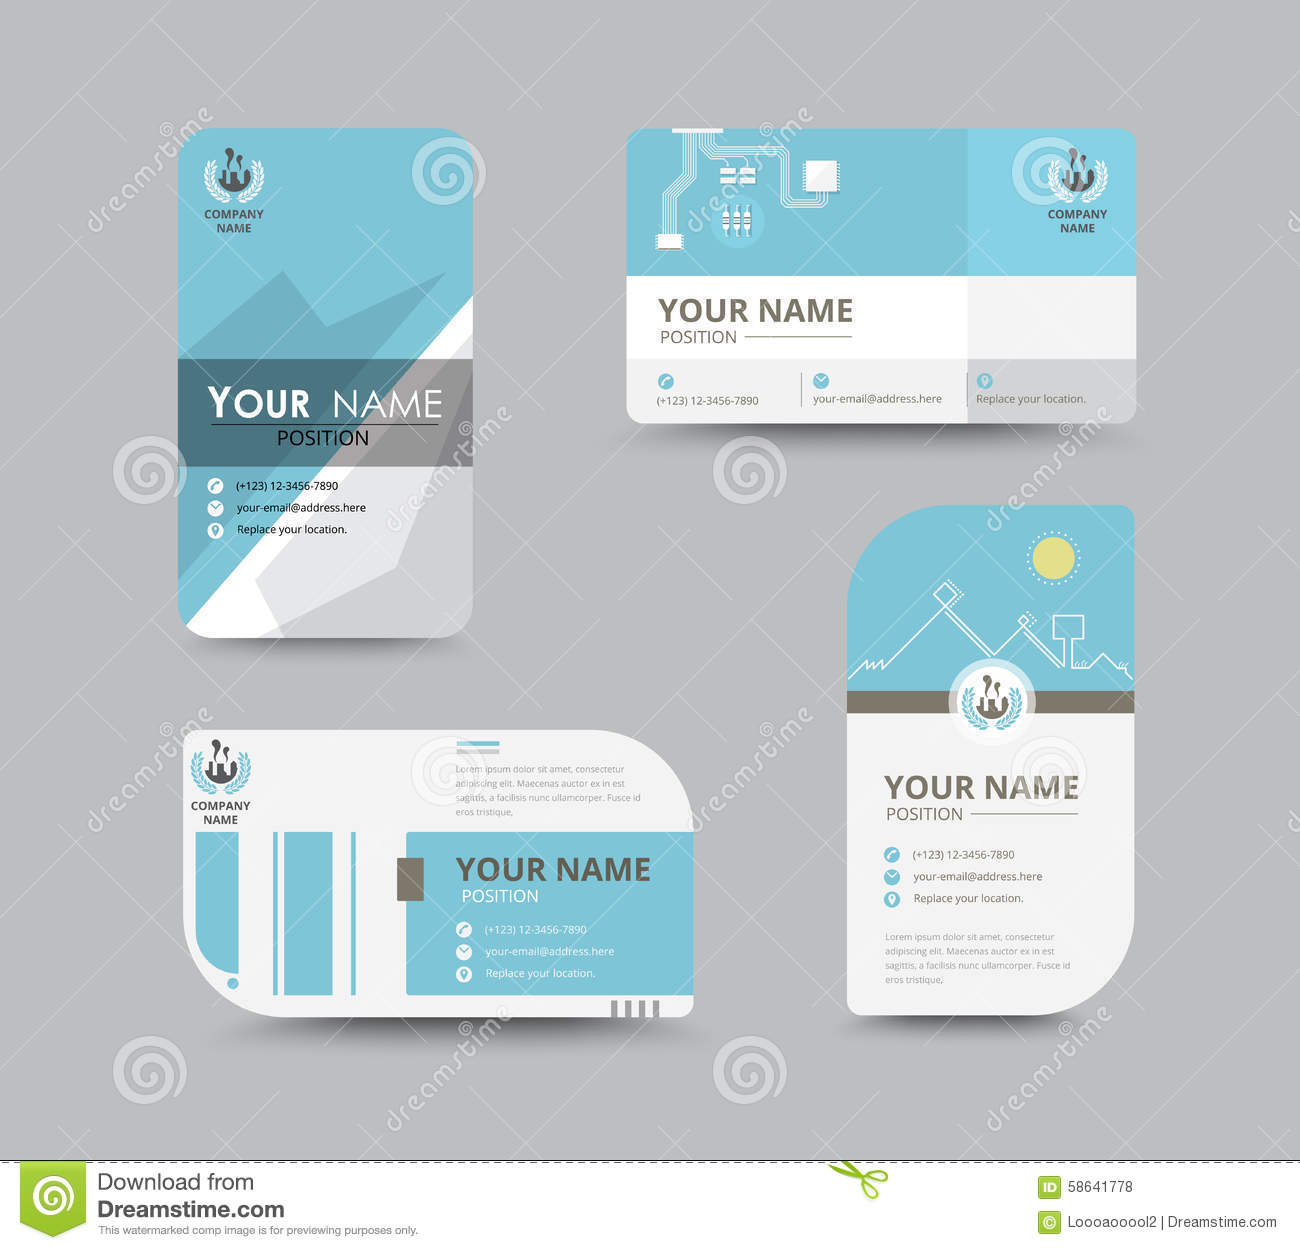 Business Card Template Design Vector Illustration | CartoonDealer ...